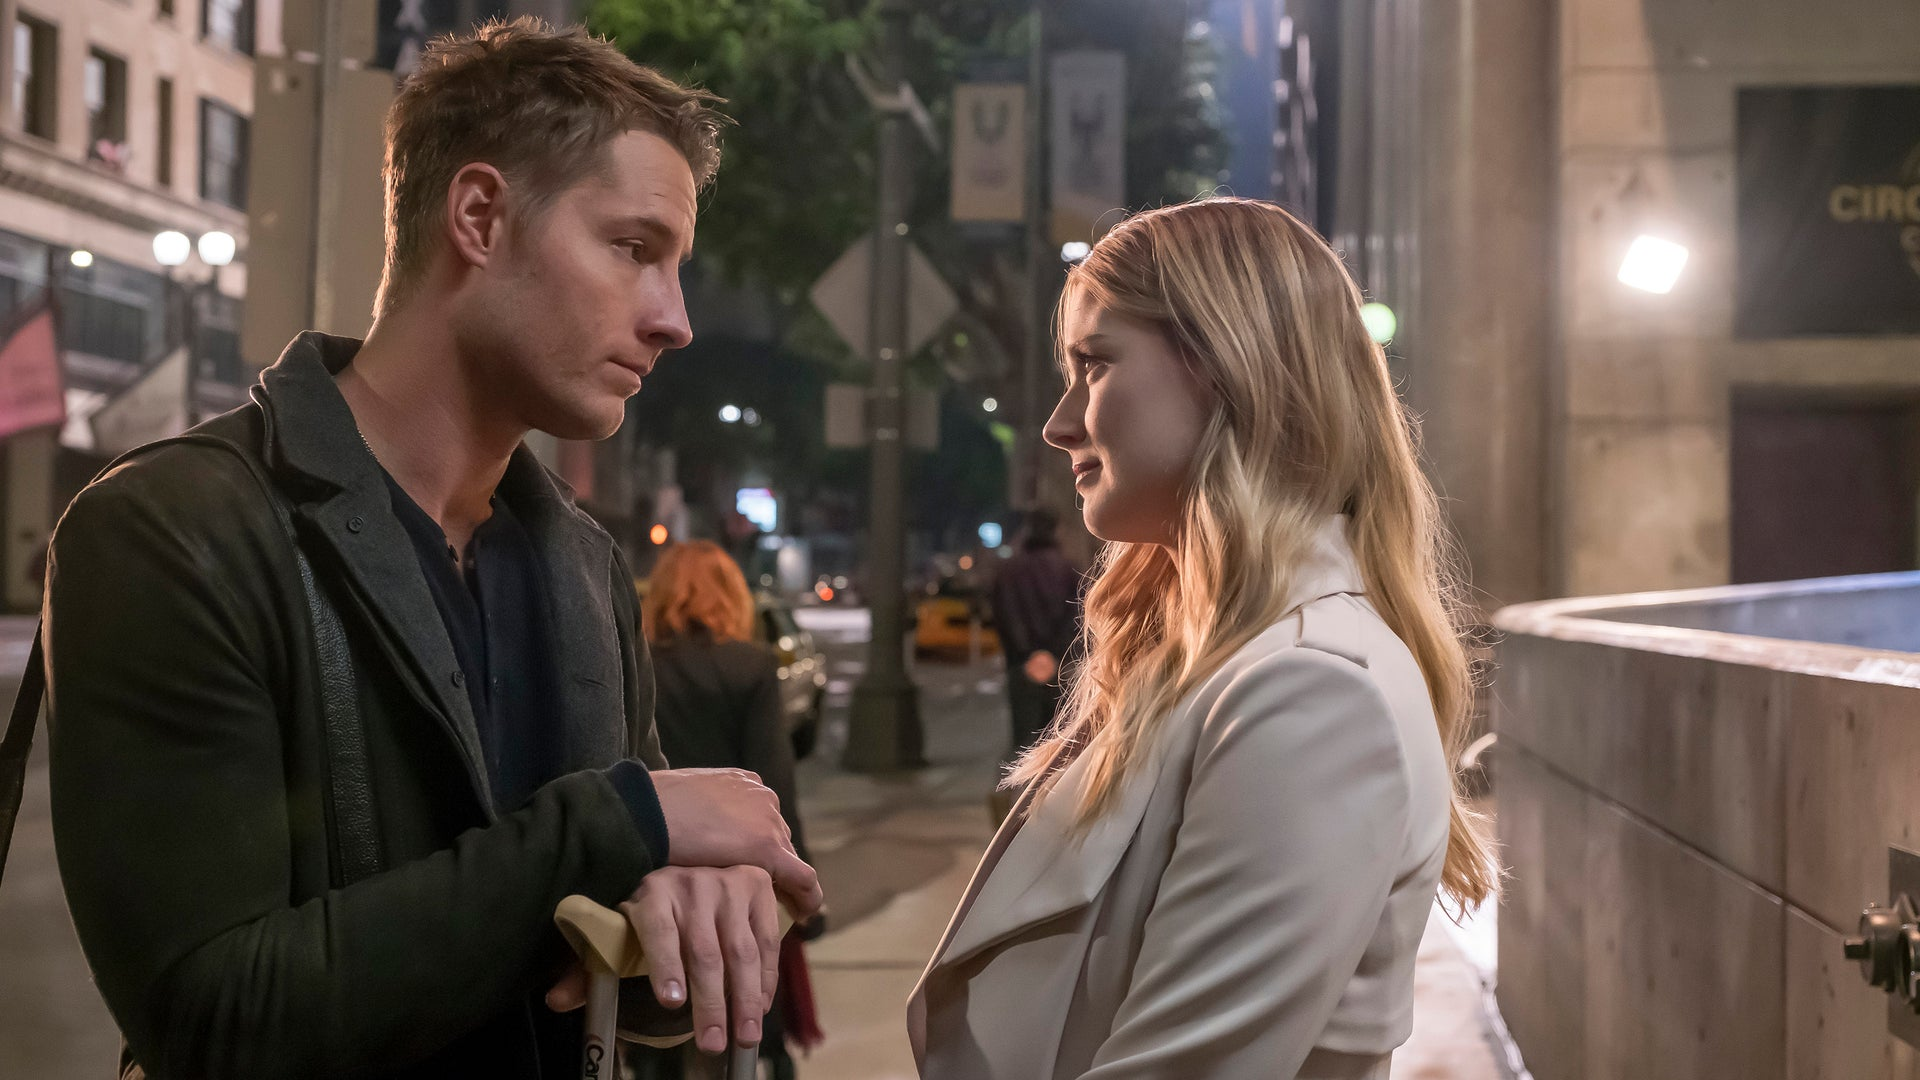 Justin Hartley as Kevin, Alex Breckenridge as Sophie, This Is Us